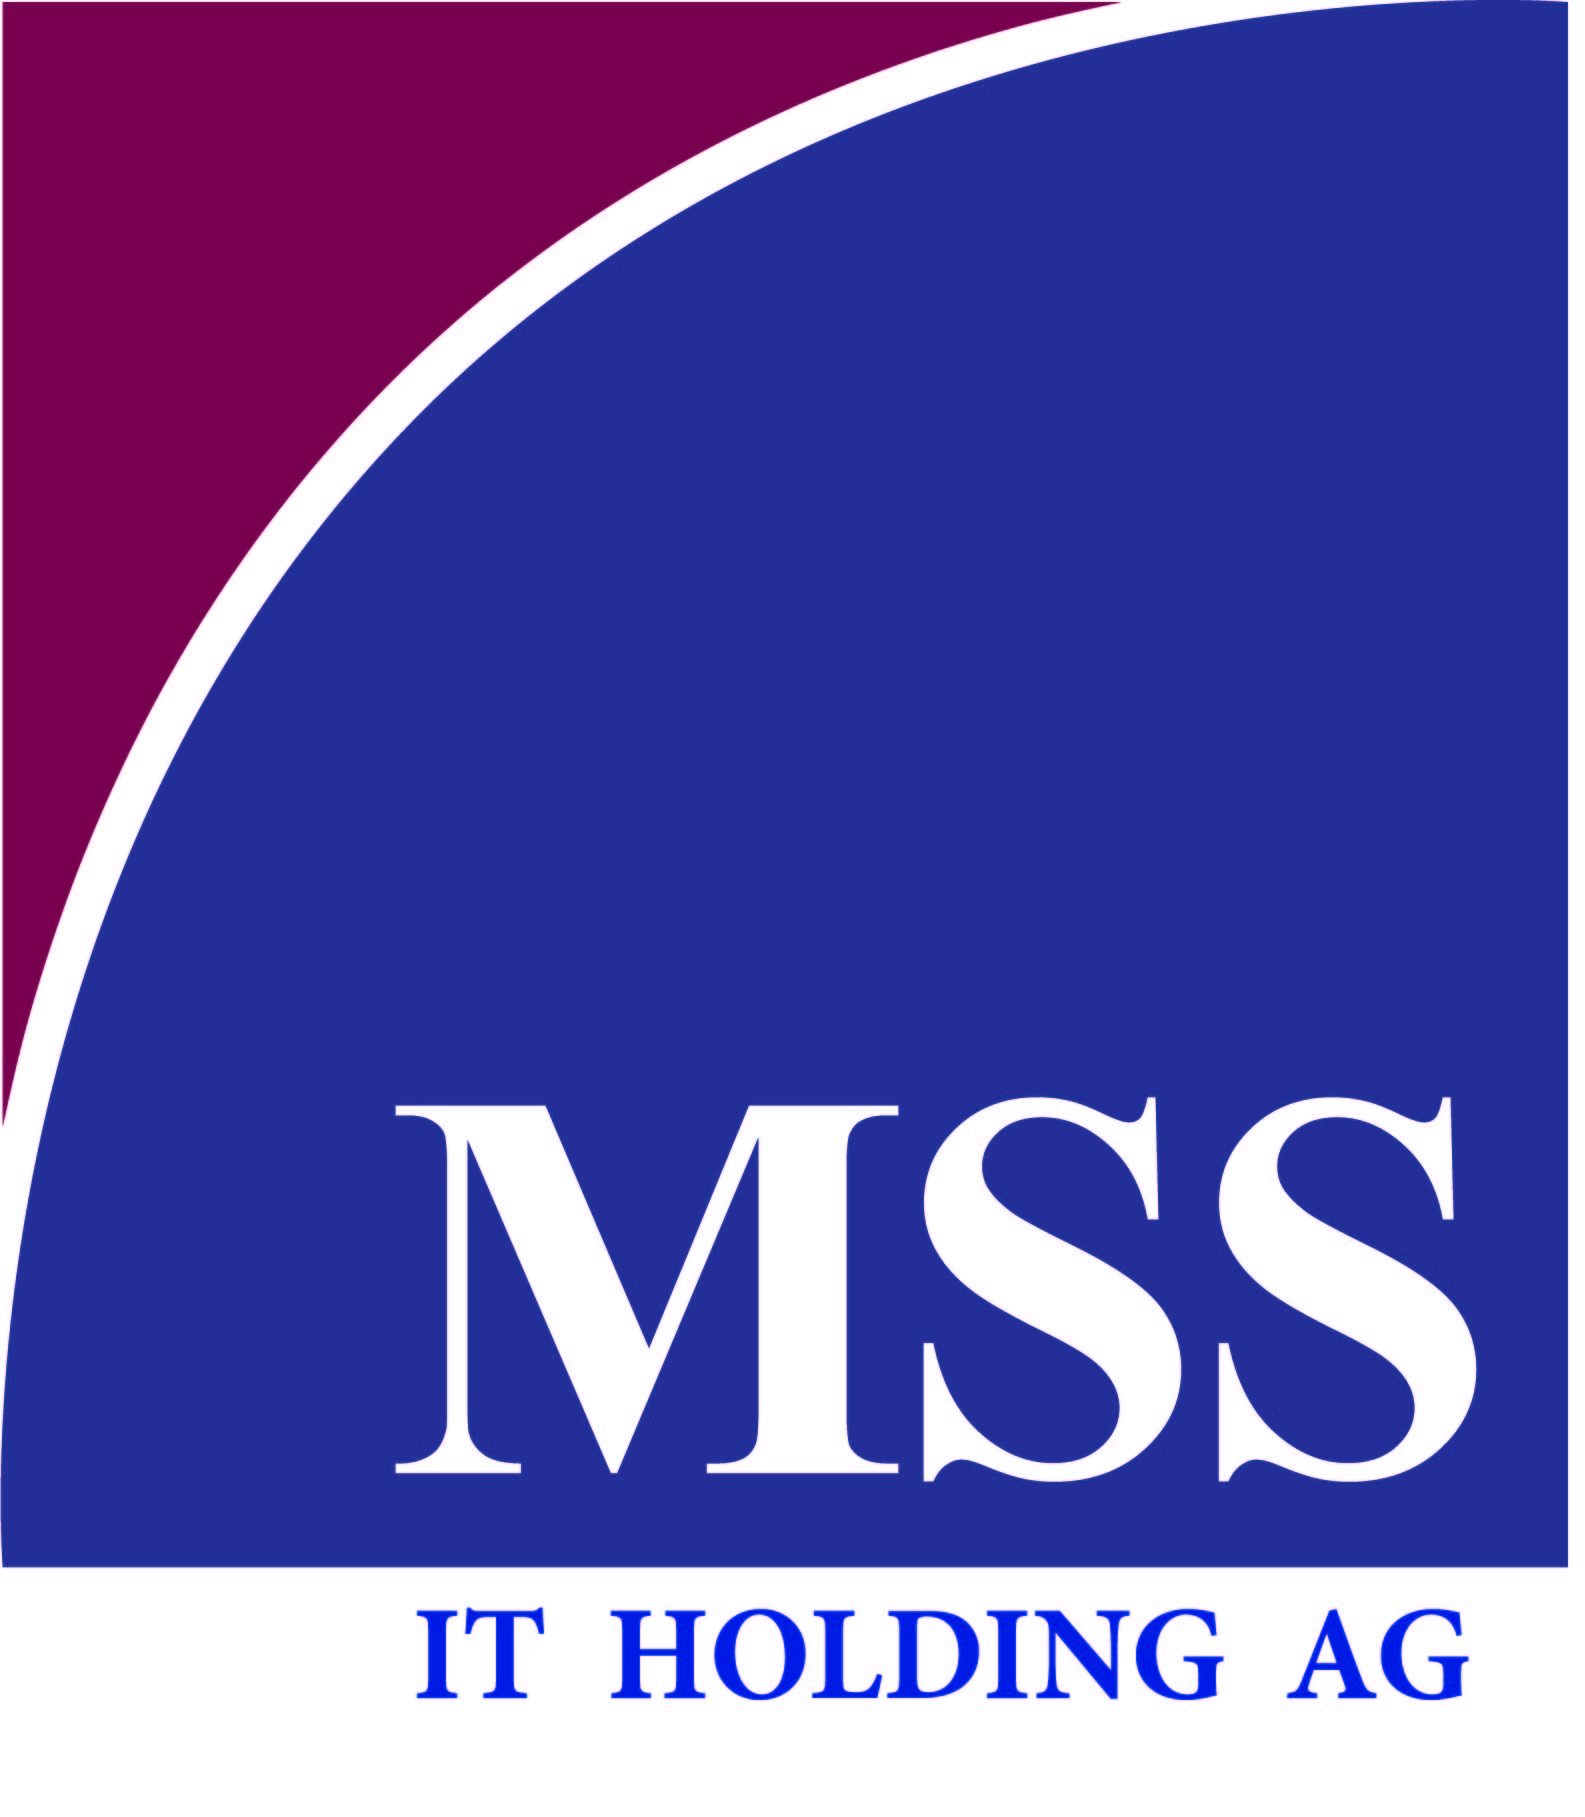 mss_it_holding_ag.jpg